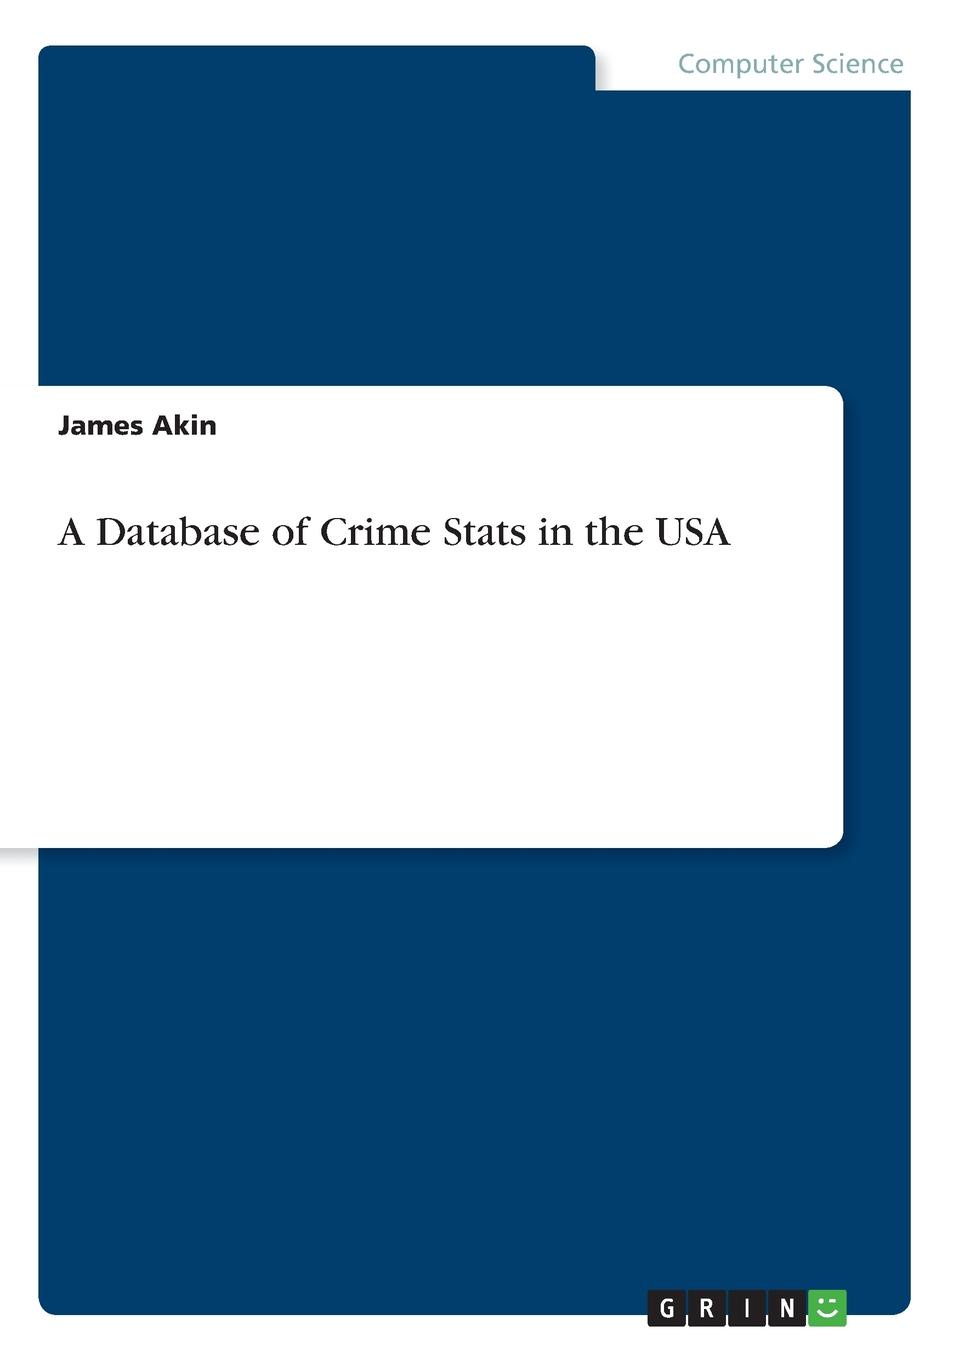 James Akin A Database of Crime Stats in the USA william roberts the correlation between crime rates and weather patterns in northern brooklyn during 2012